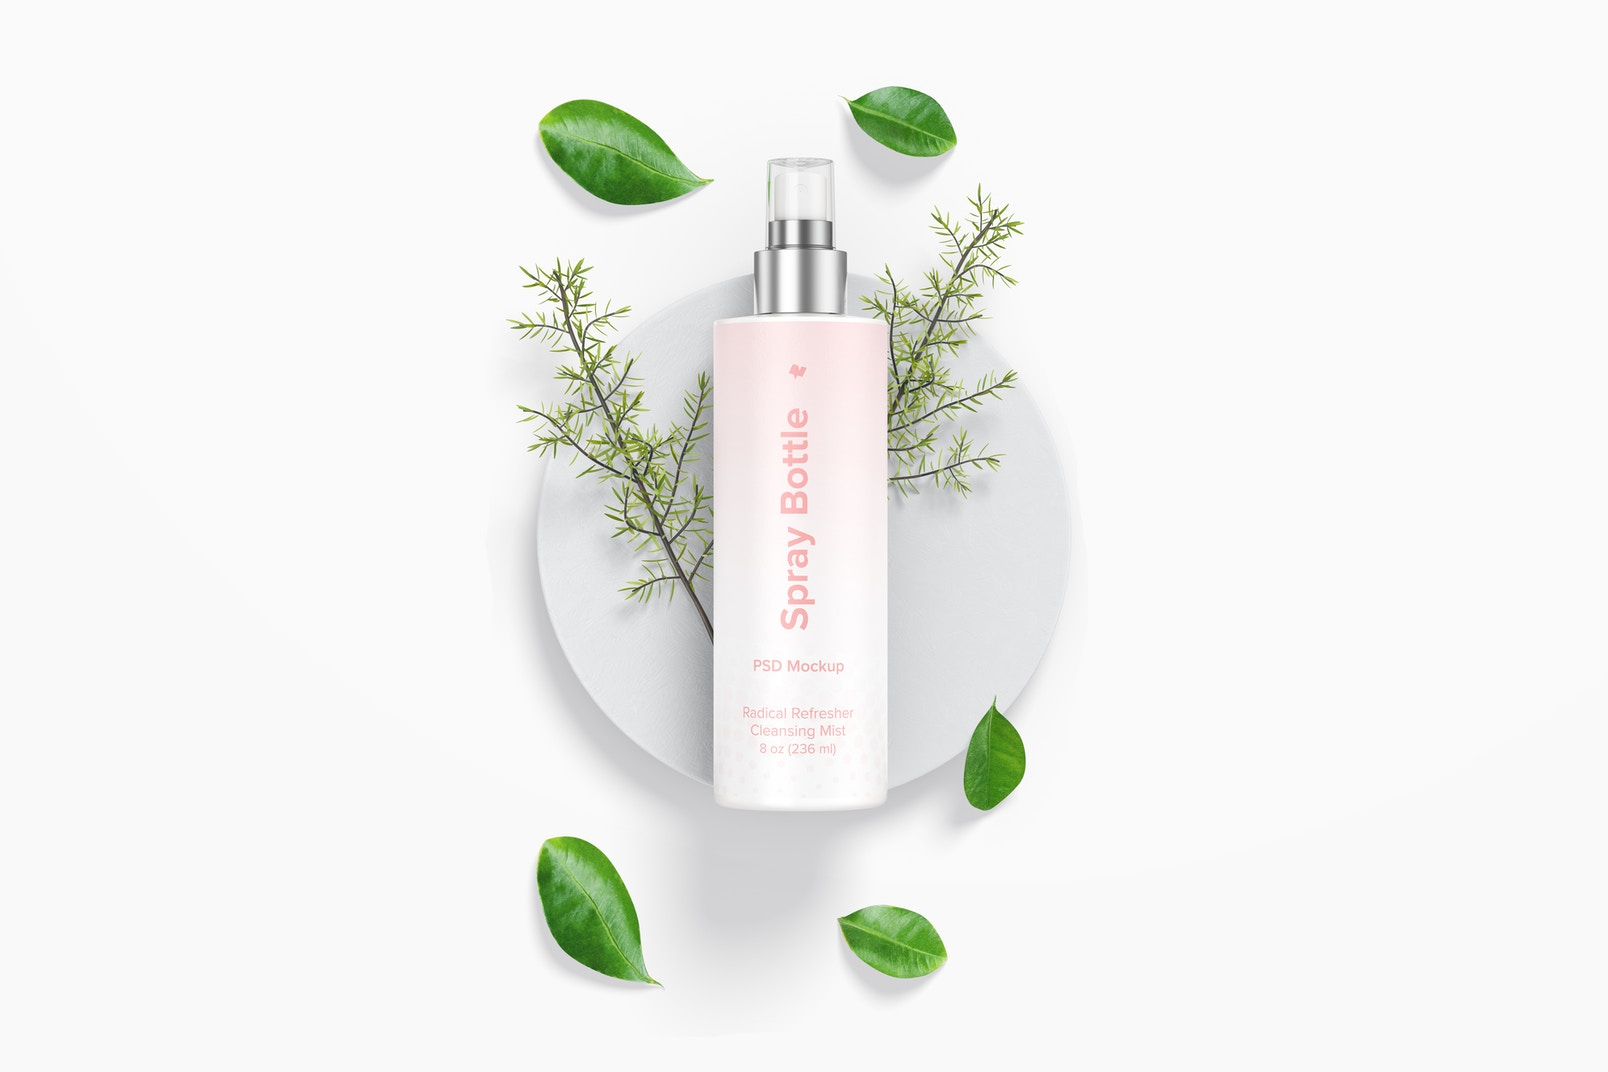 8 oz Spray Round Bottle with Leaves Mockup